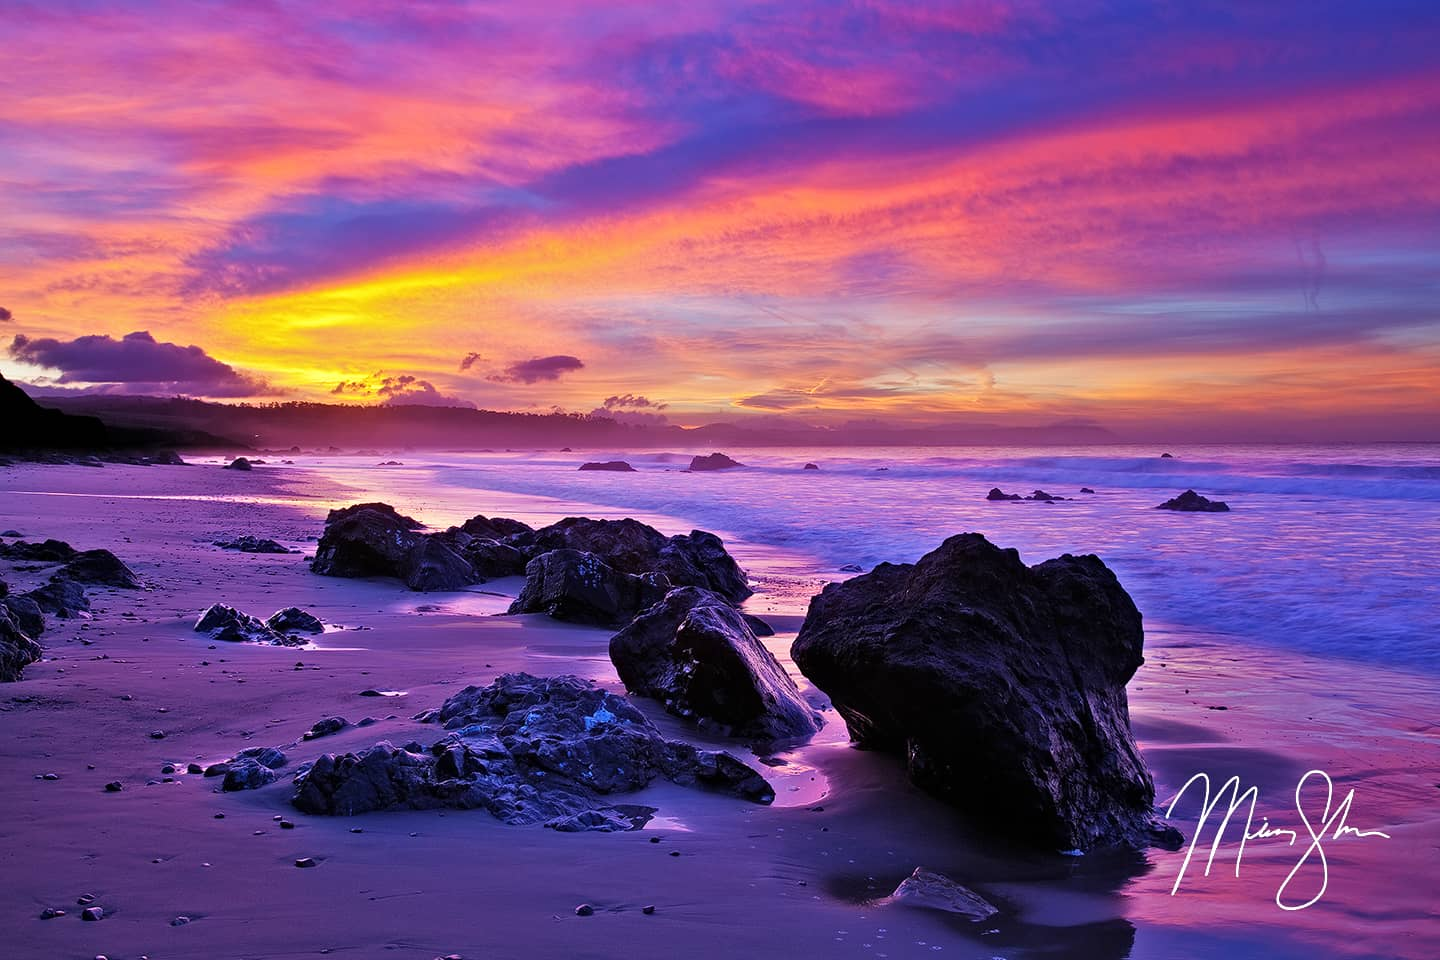 Open edition fine art print of Big Sur Sunrise from Mickey Shannon Photography. Location: San Simeon, Big Sur, California